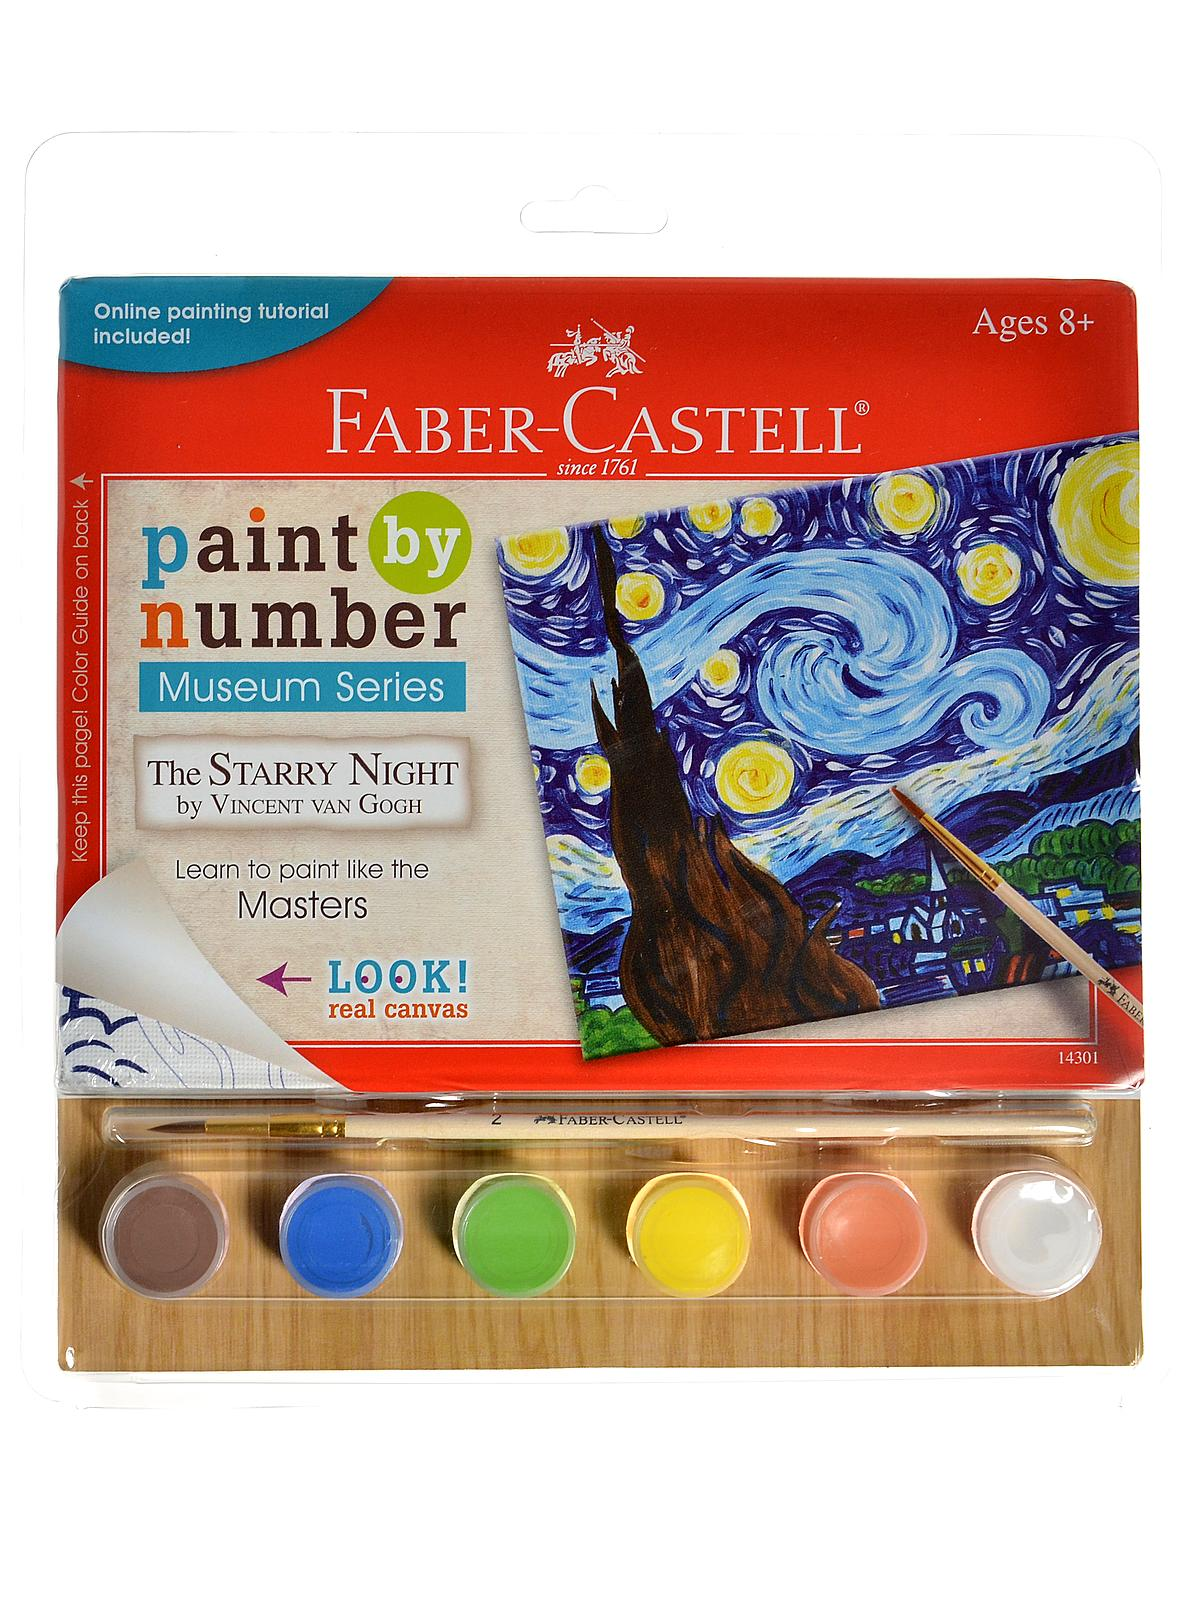 Paint by Number Museum Series